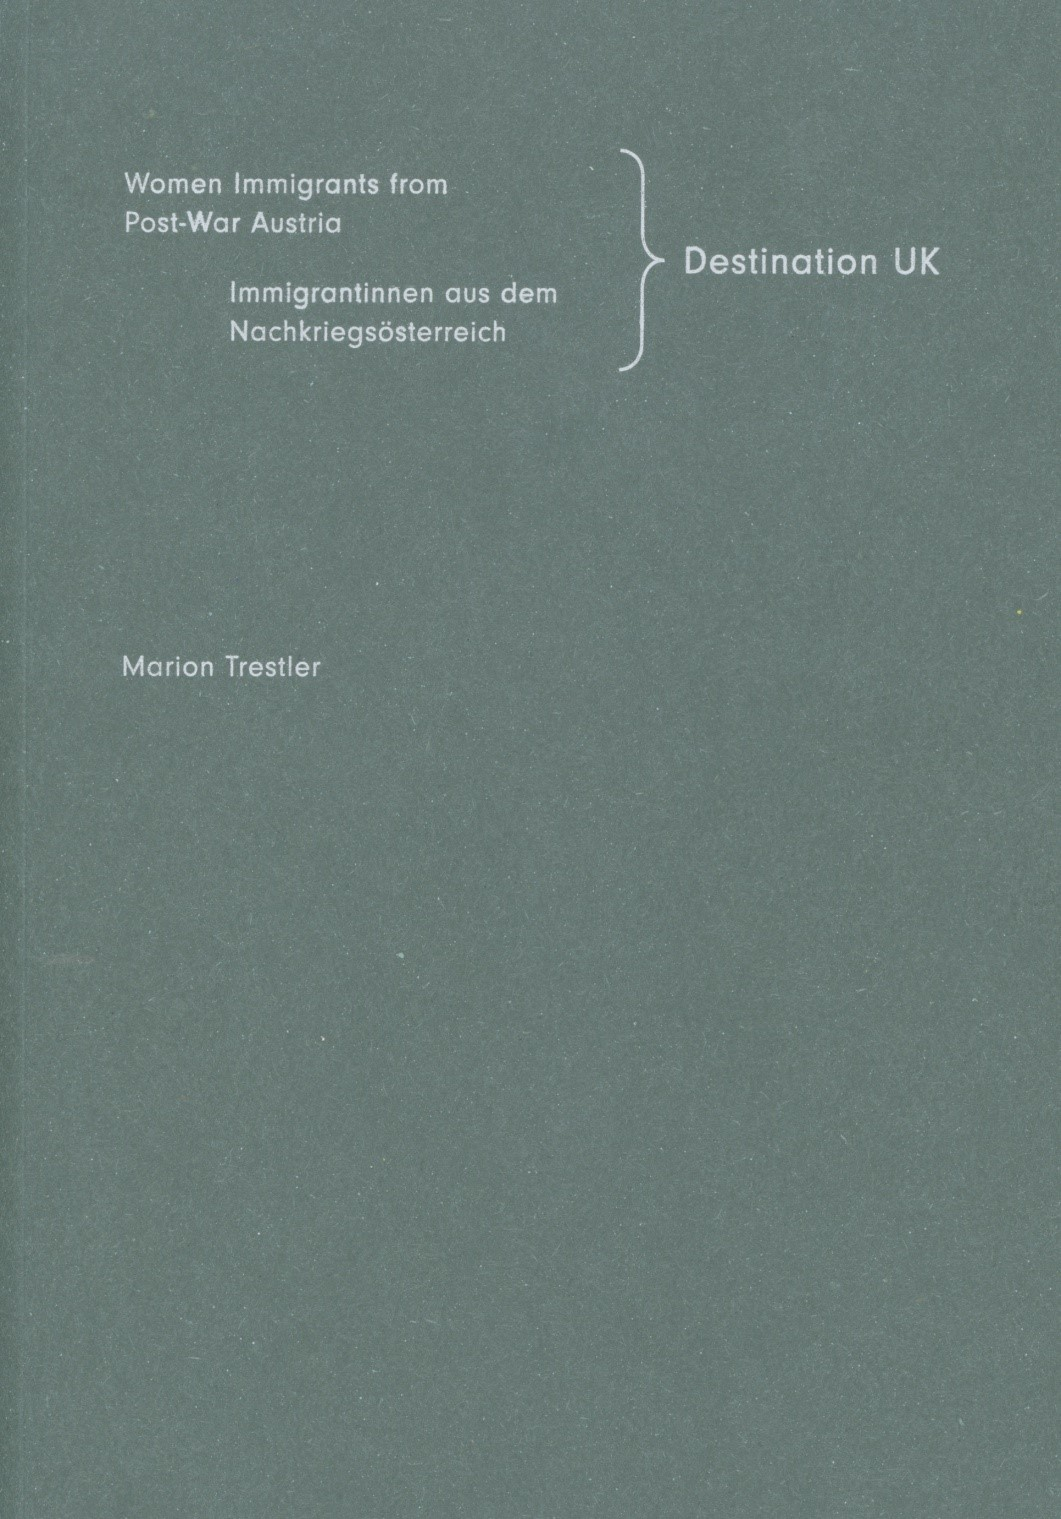 Marion Trestler, Destination UK: Women Immigrants From Post-War Austria (London And Vienna, 2013).